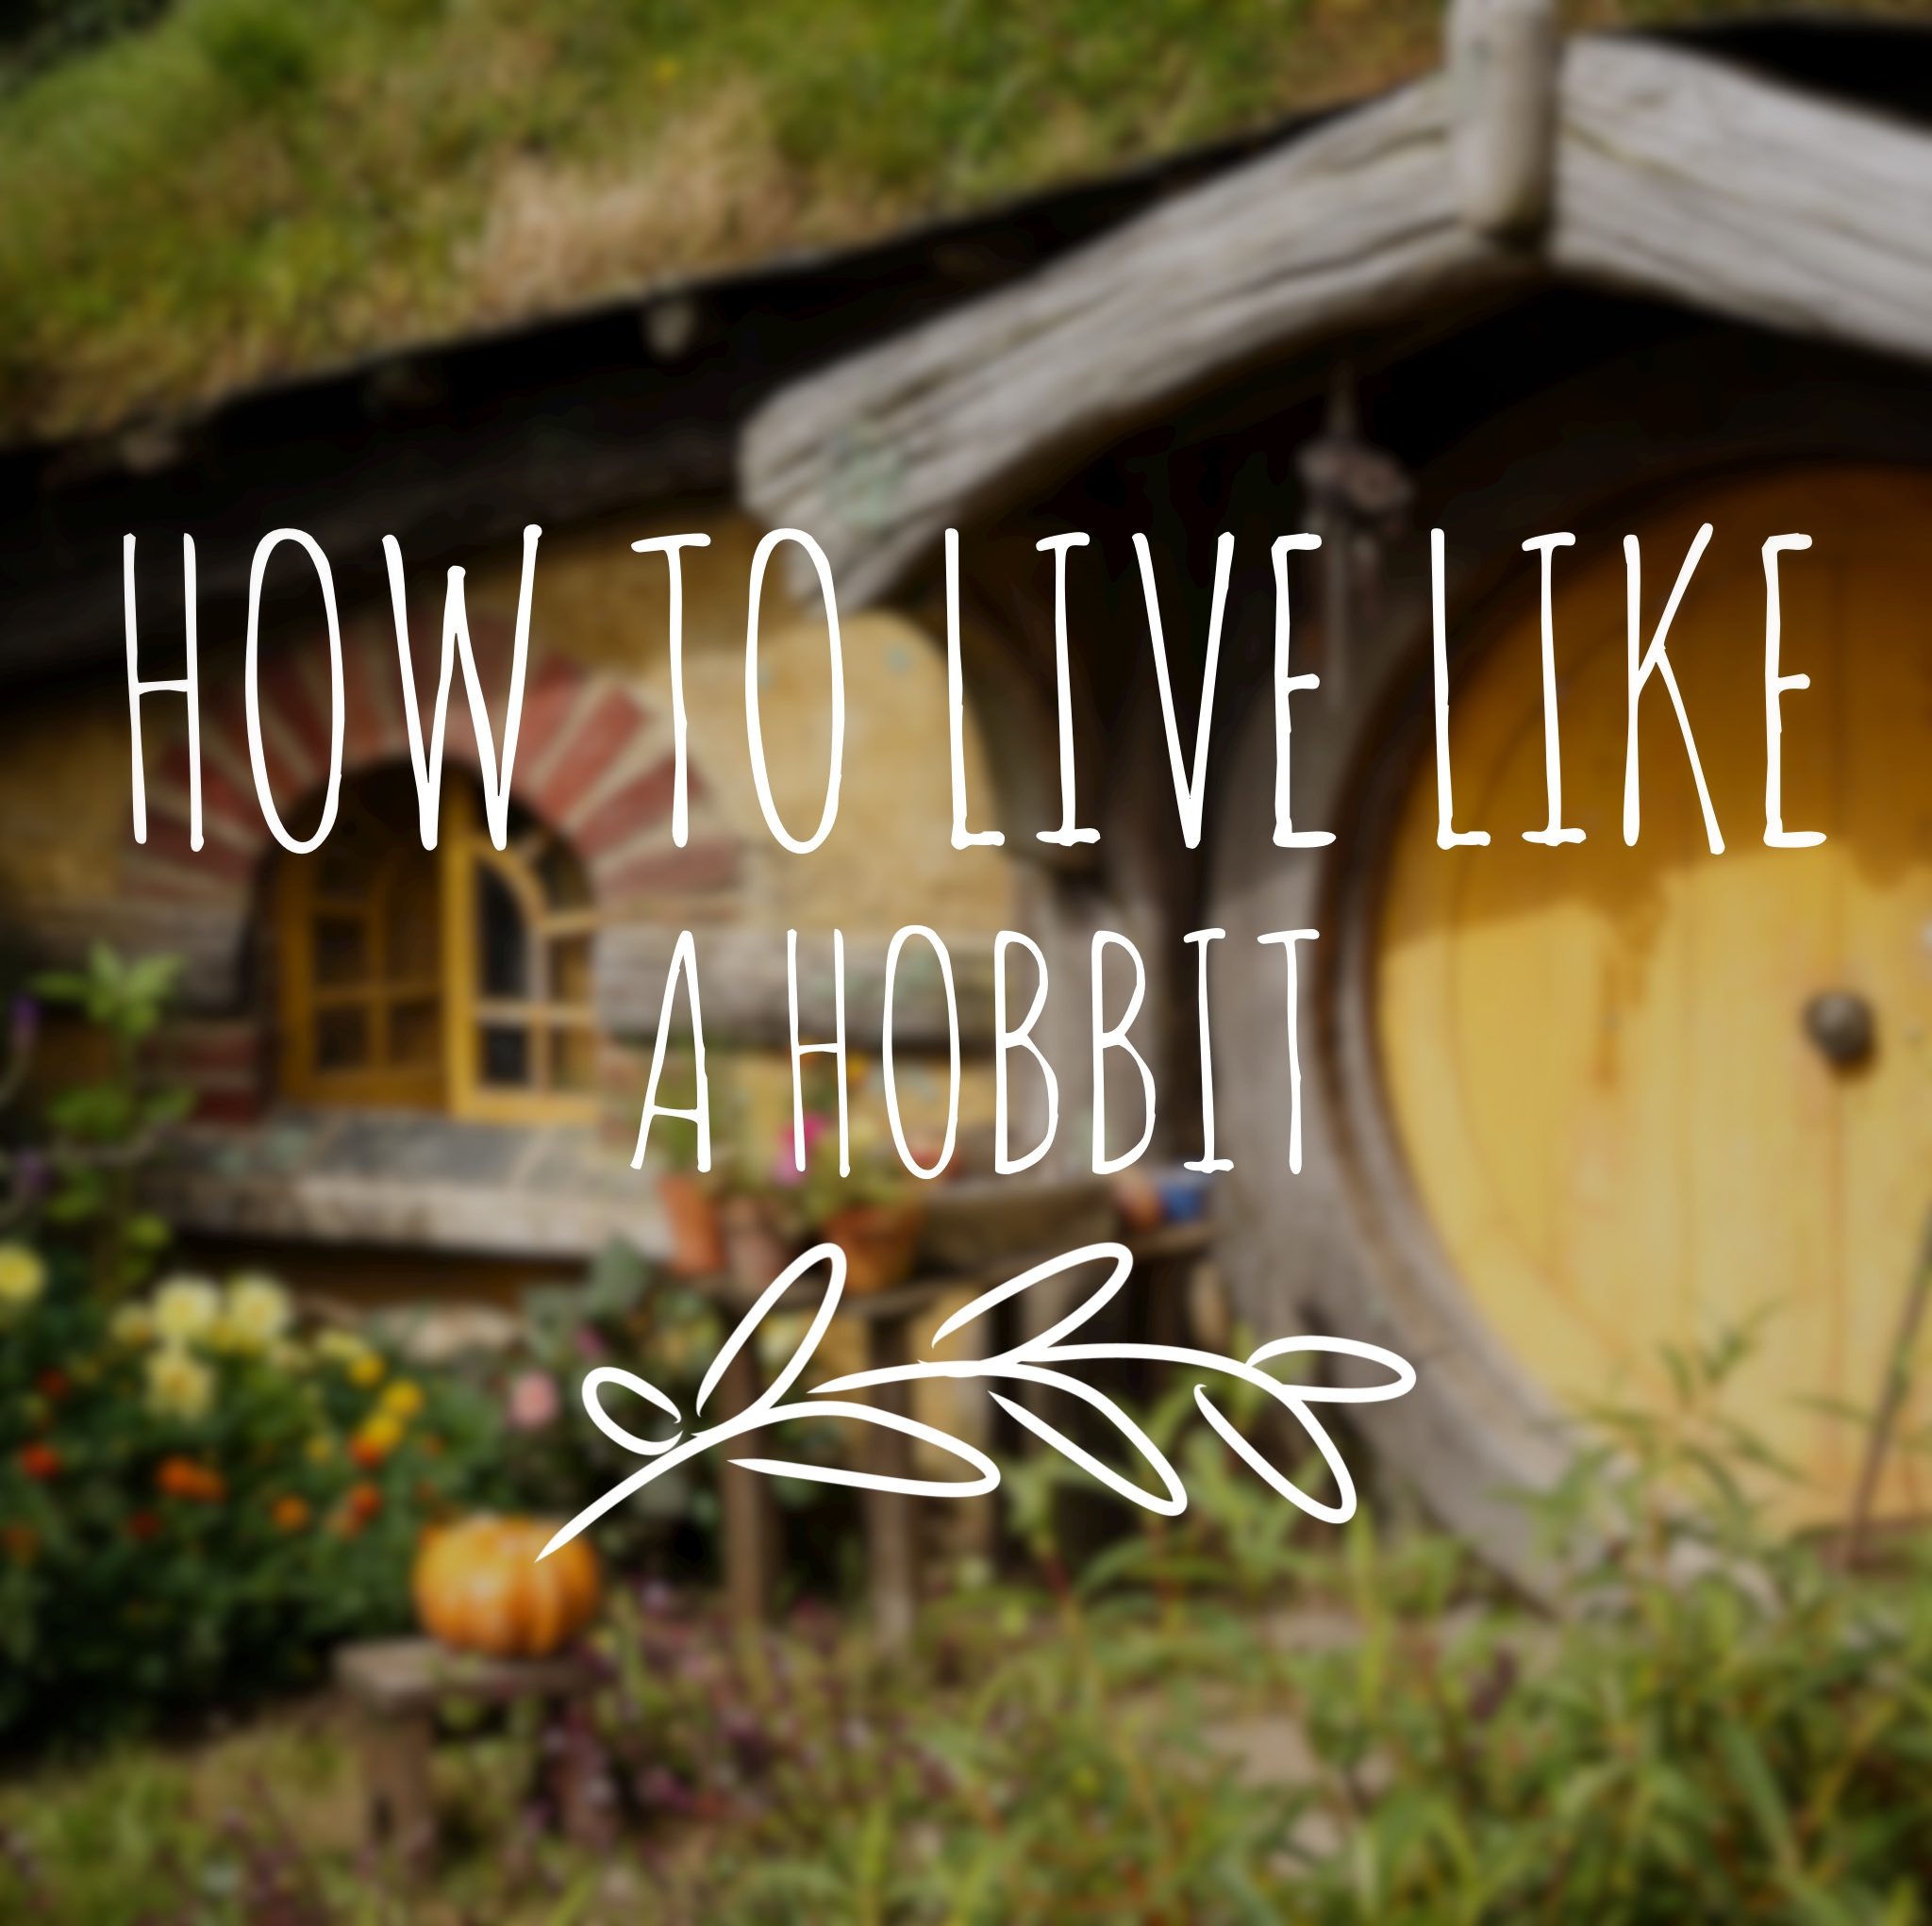 How To Live Like a Hobbit